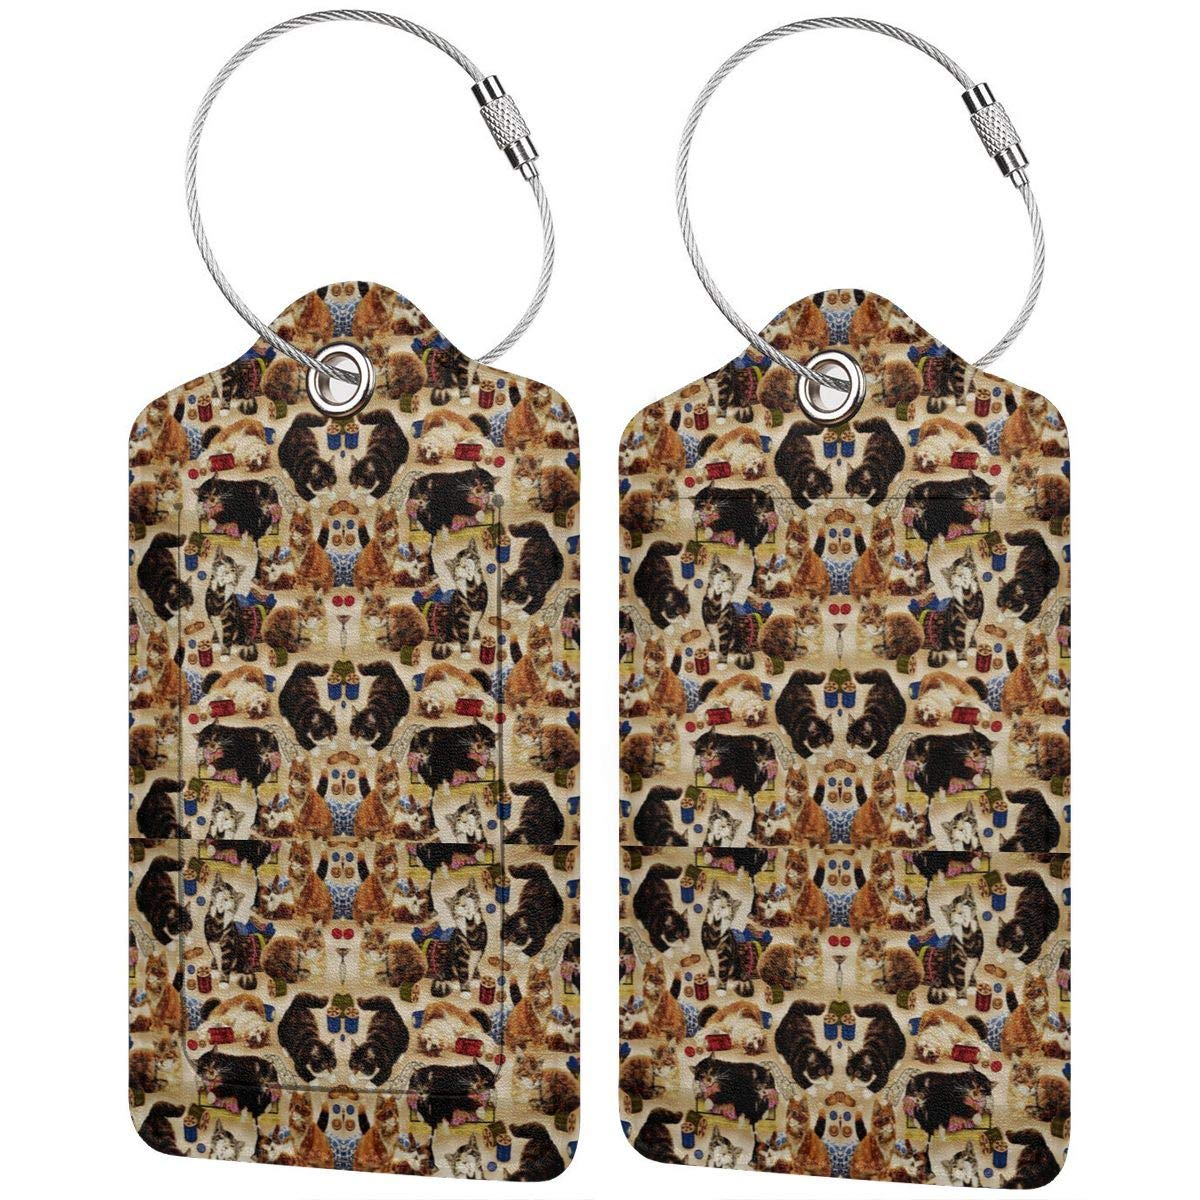 Sew Curious Cats And Sewing Notions Tan Leather Luggage Tags Personalized Privacy Cover With Privacy Flap